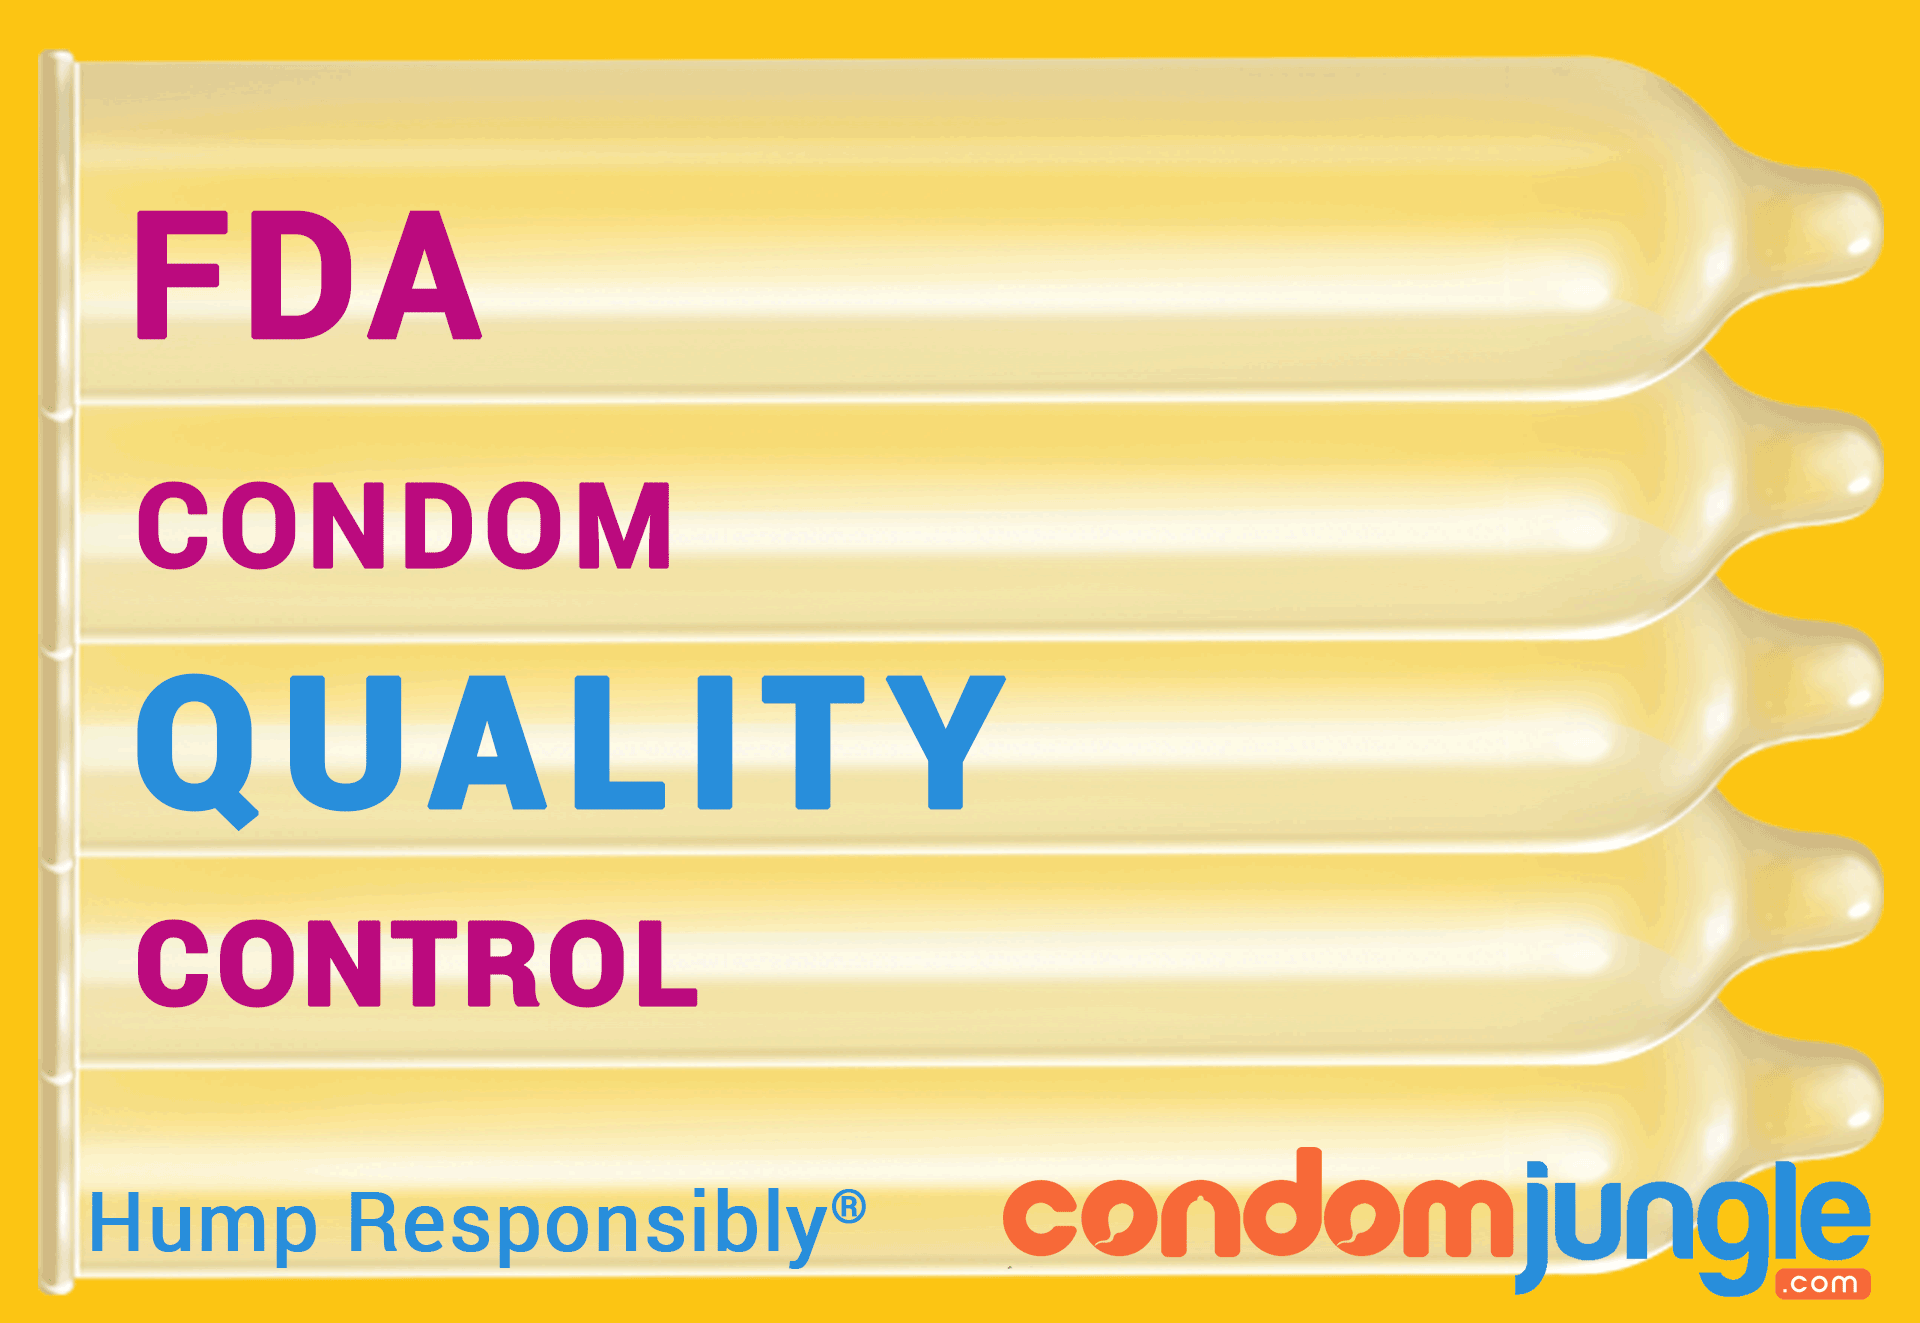 FDA Condom Quality Control for Class II Devices